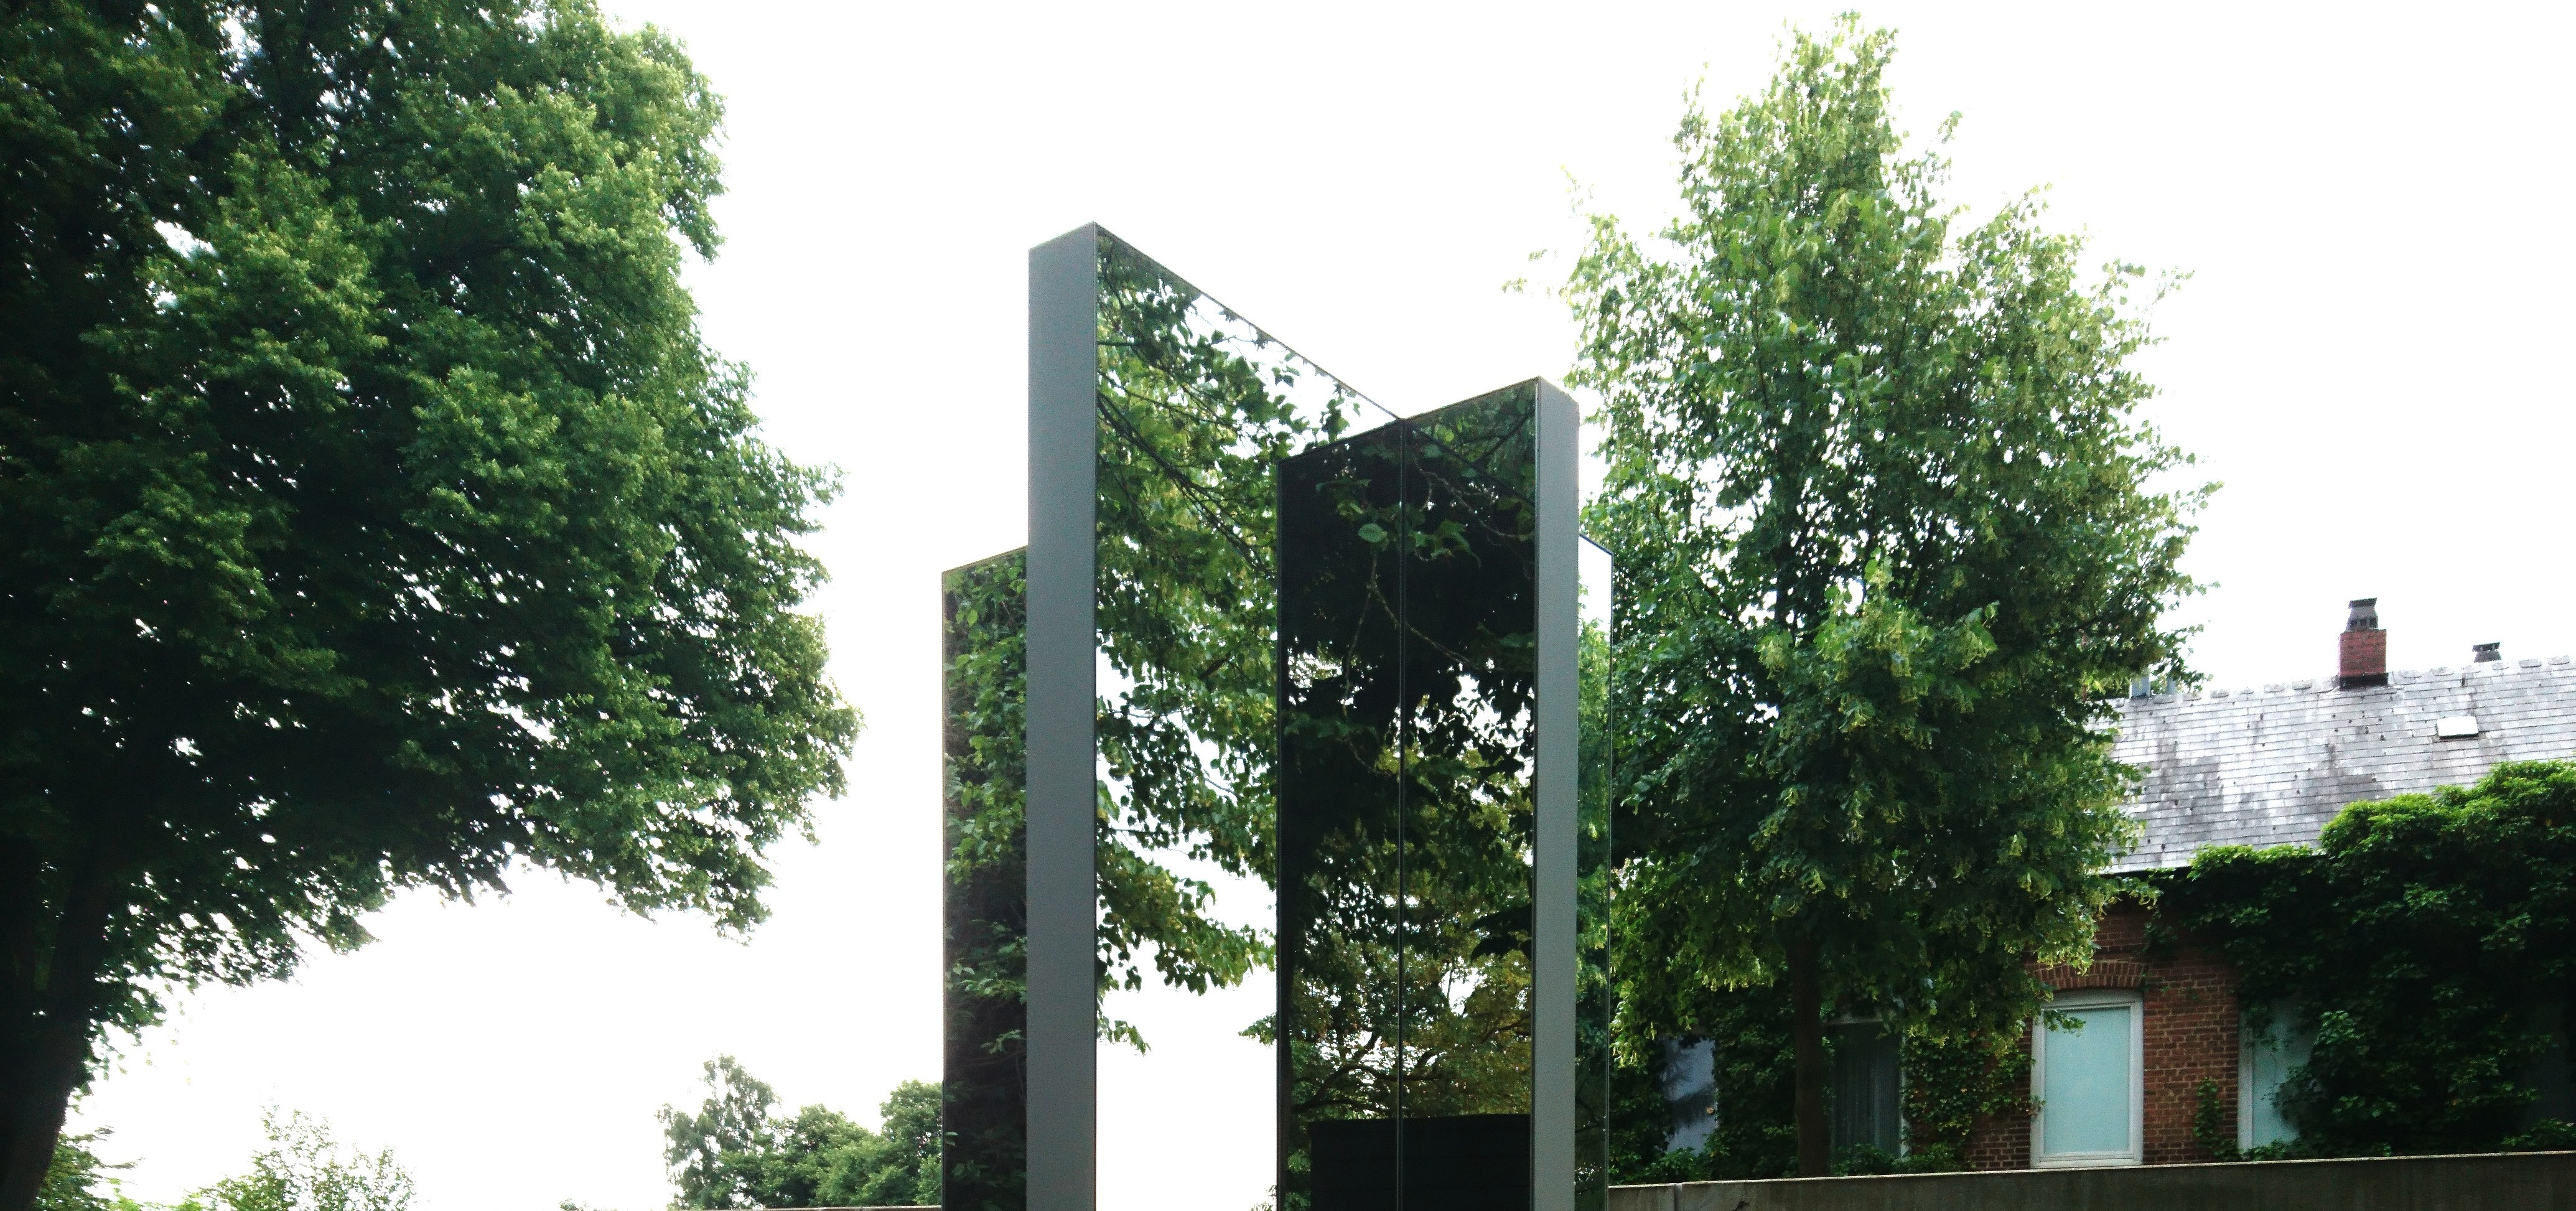 rotating_mirror_rotating, Neumünster, 2018 / © Archive Mischa Kuball, Düsseldorf / Photo: Yanine Esquivel